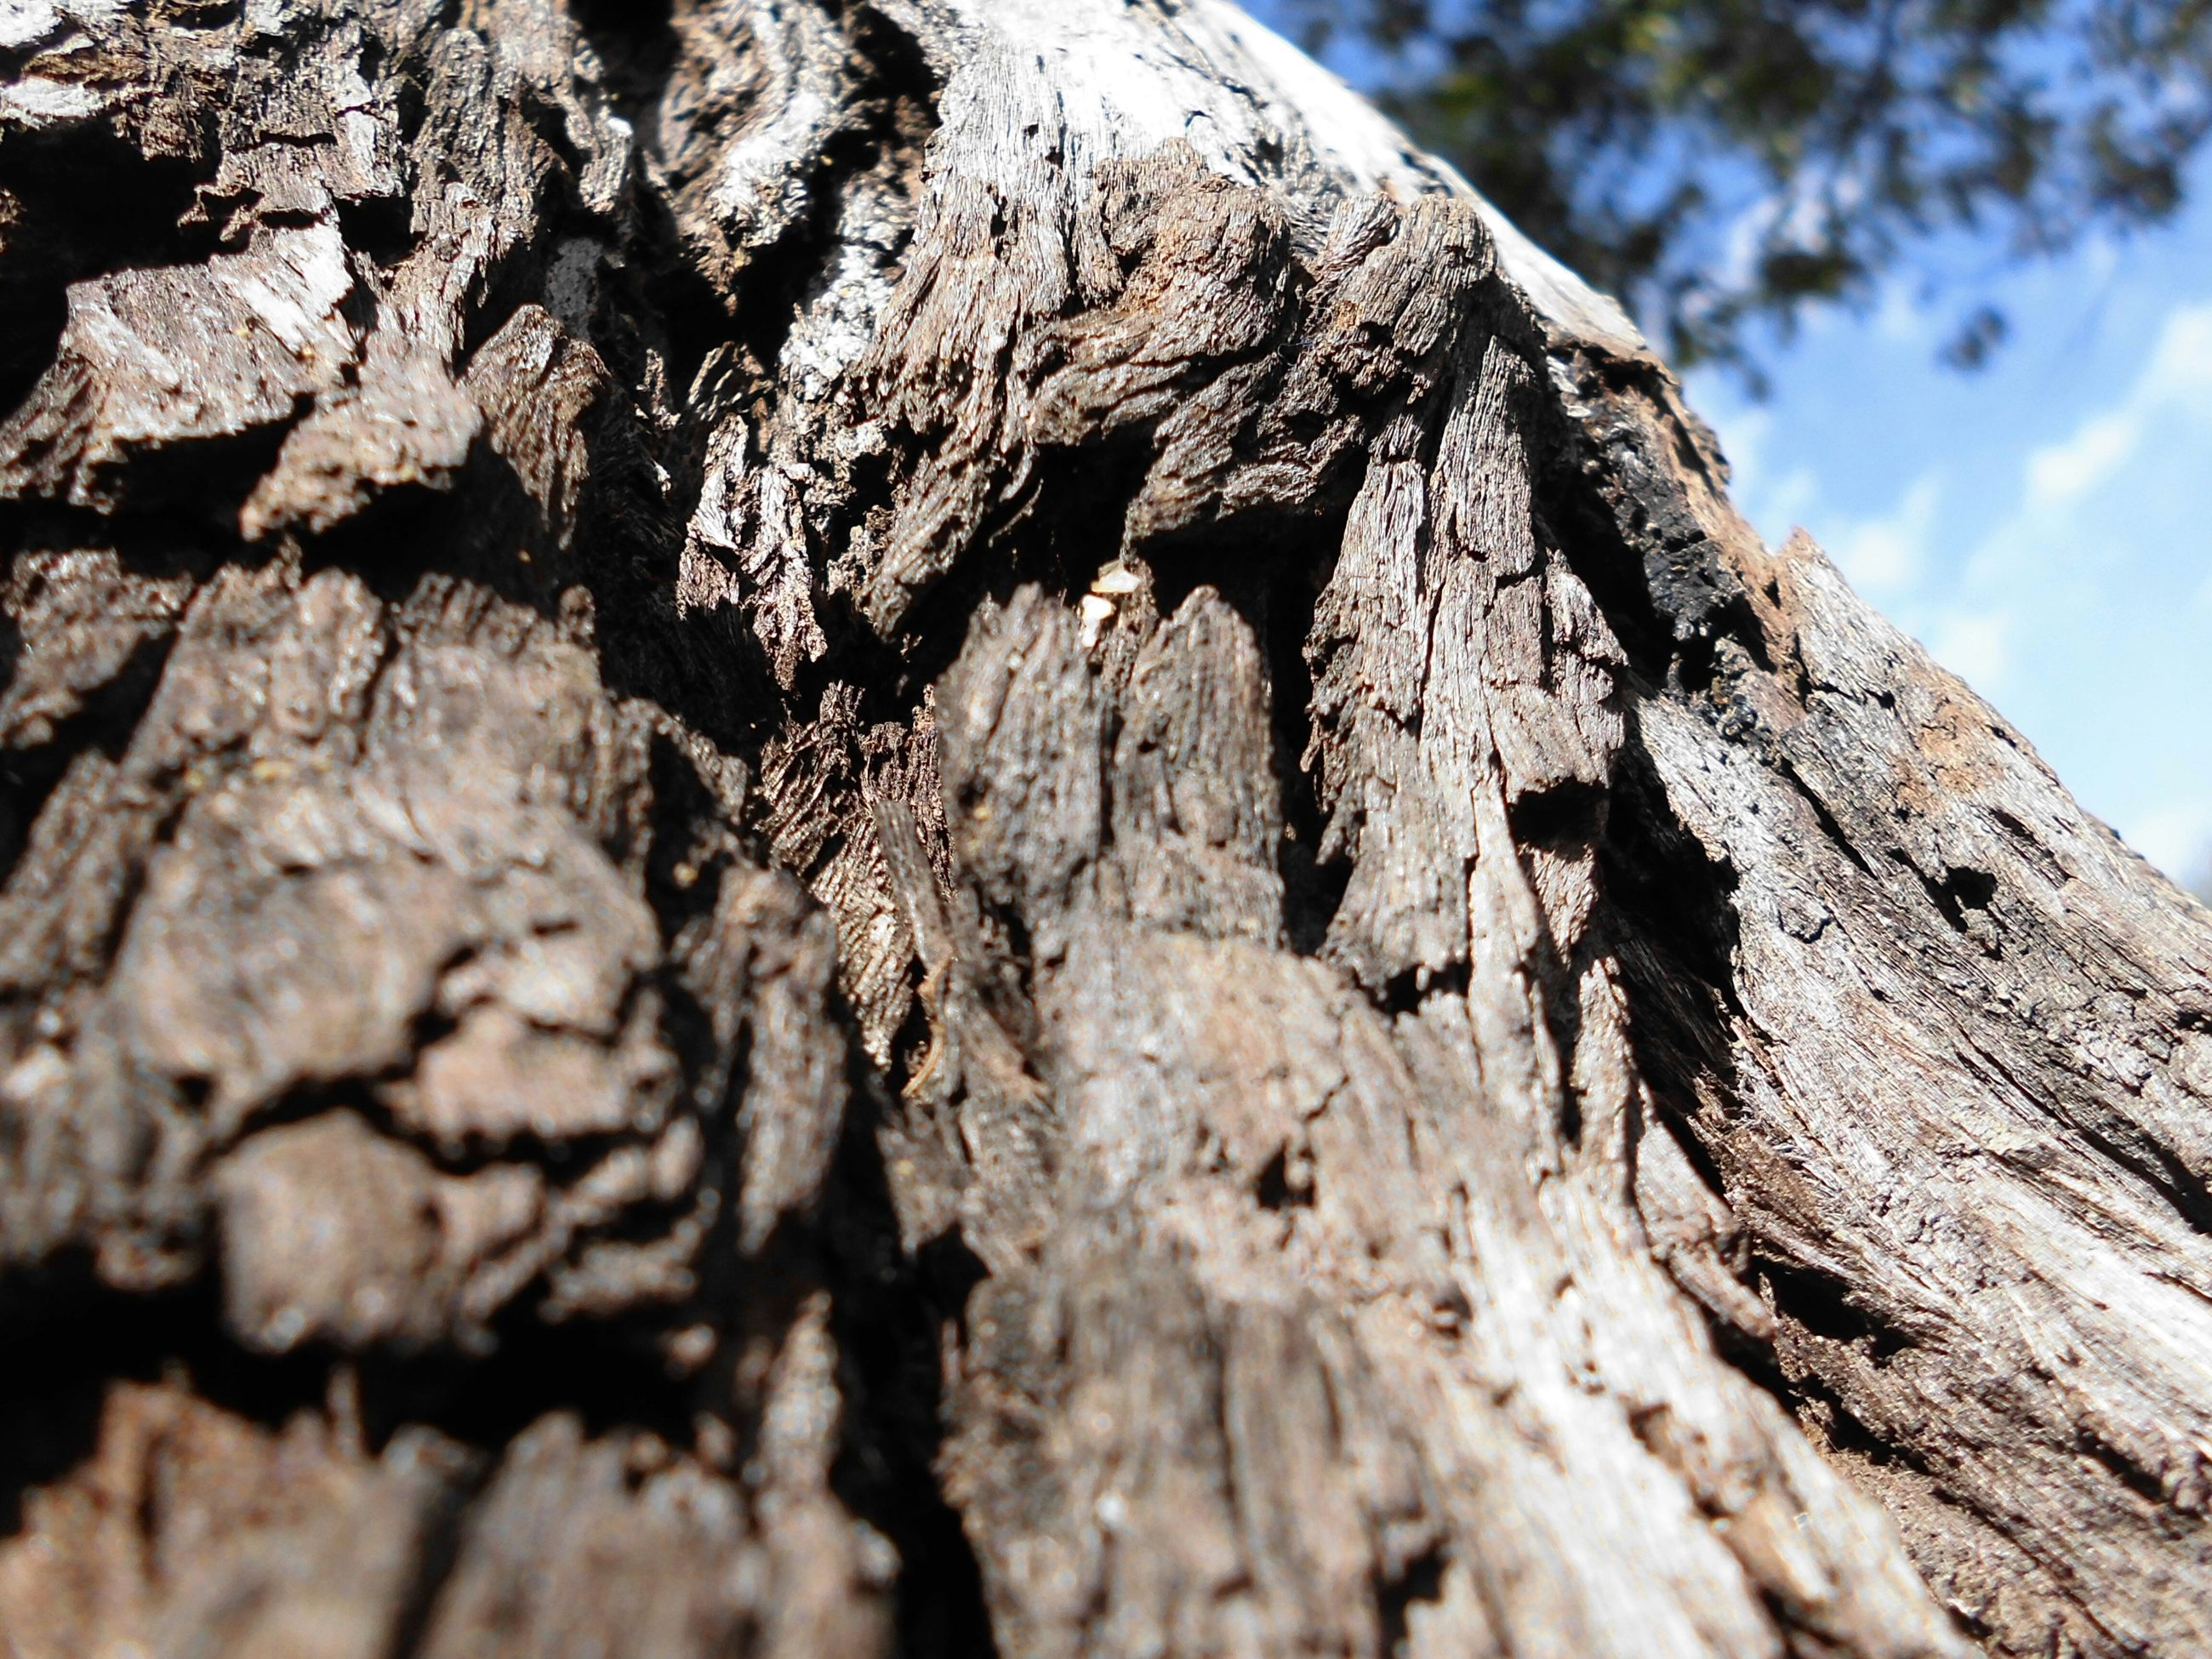 textured, rough, tree, tree trunk, bark, low angle view, close-up, nature, focus on foreground, natural pattern, outdoors, day, tranquility, wood - material, no people, sky, rock - object, growth, selective focus, pattern